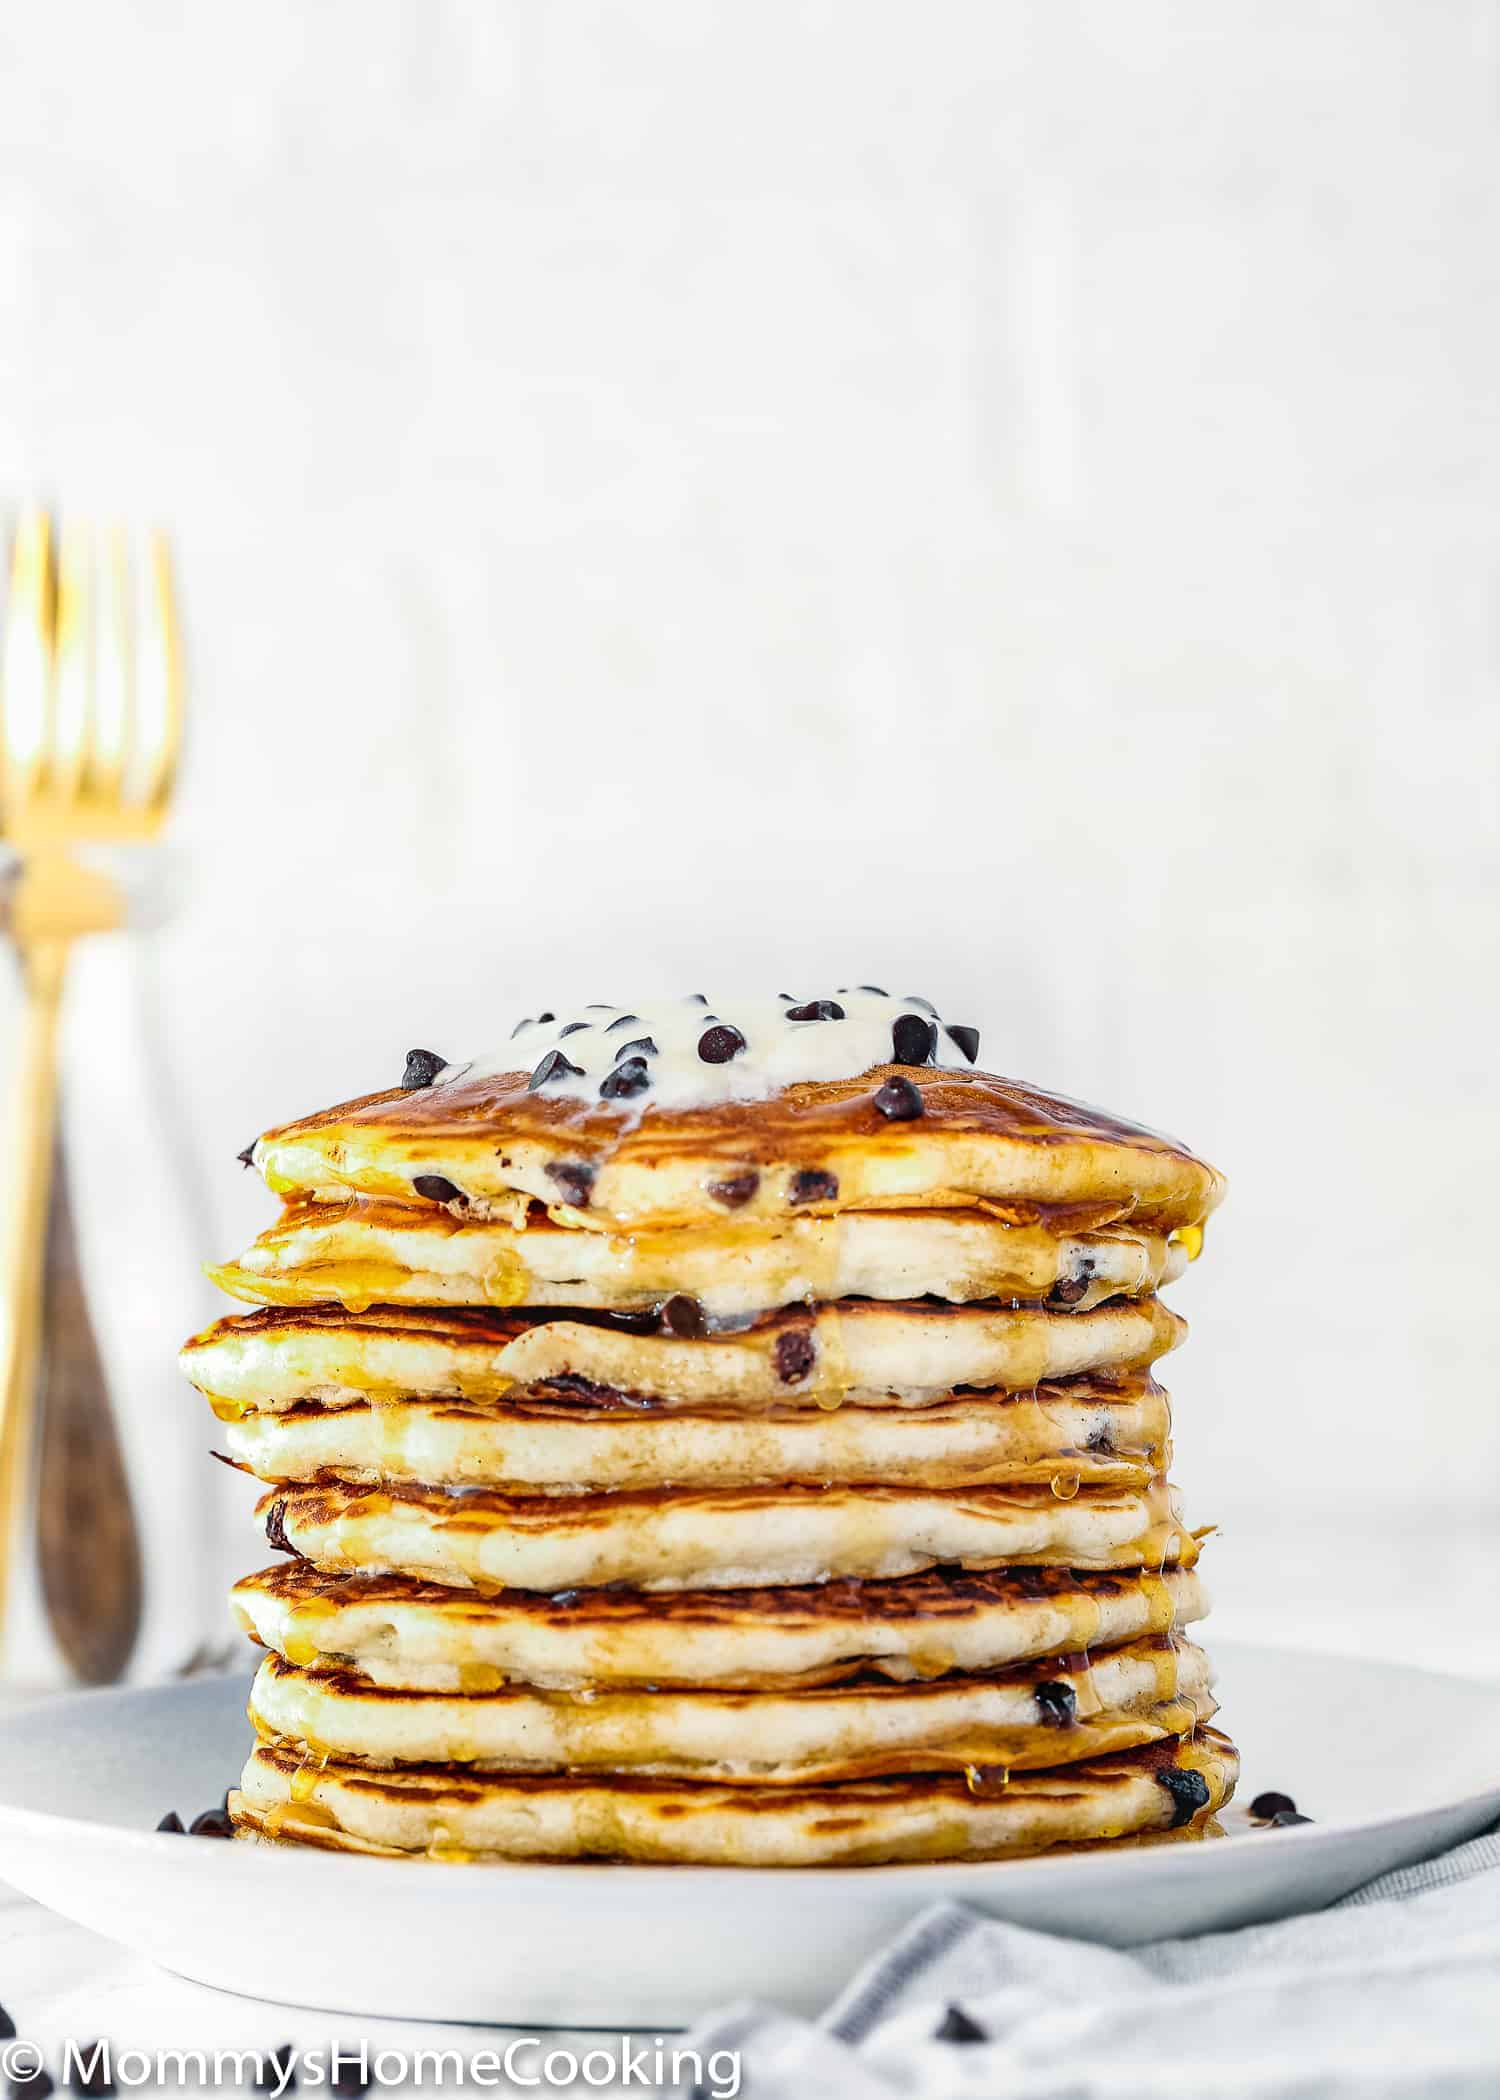 This Easy Eggless Chocolate Chip Pancakes recipe makes light and fluffy pancakes that are great for breakfast or brunch. They require a few simple ingredients you probably have in your kitchen right now. Freezing instructions included. https://mommyshomecooking.com